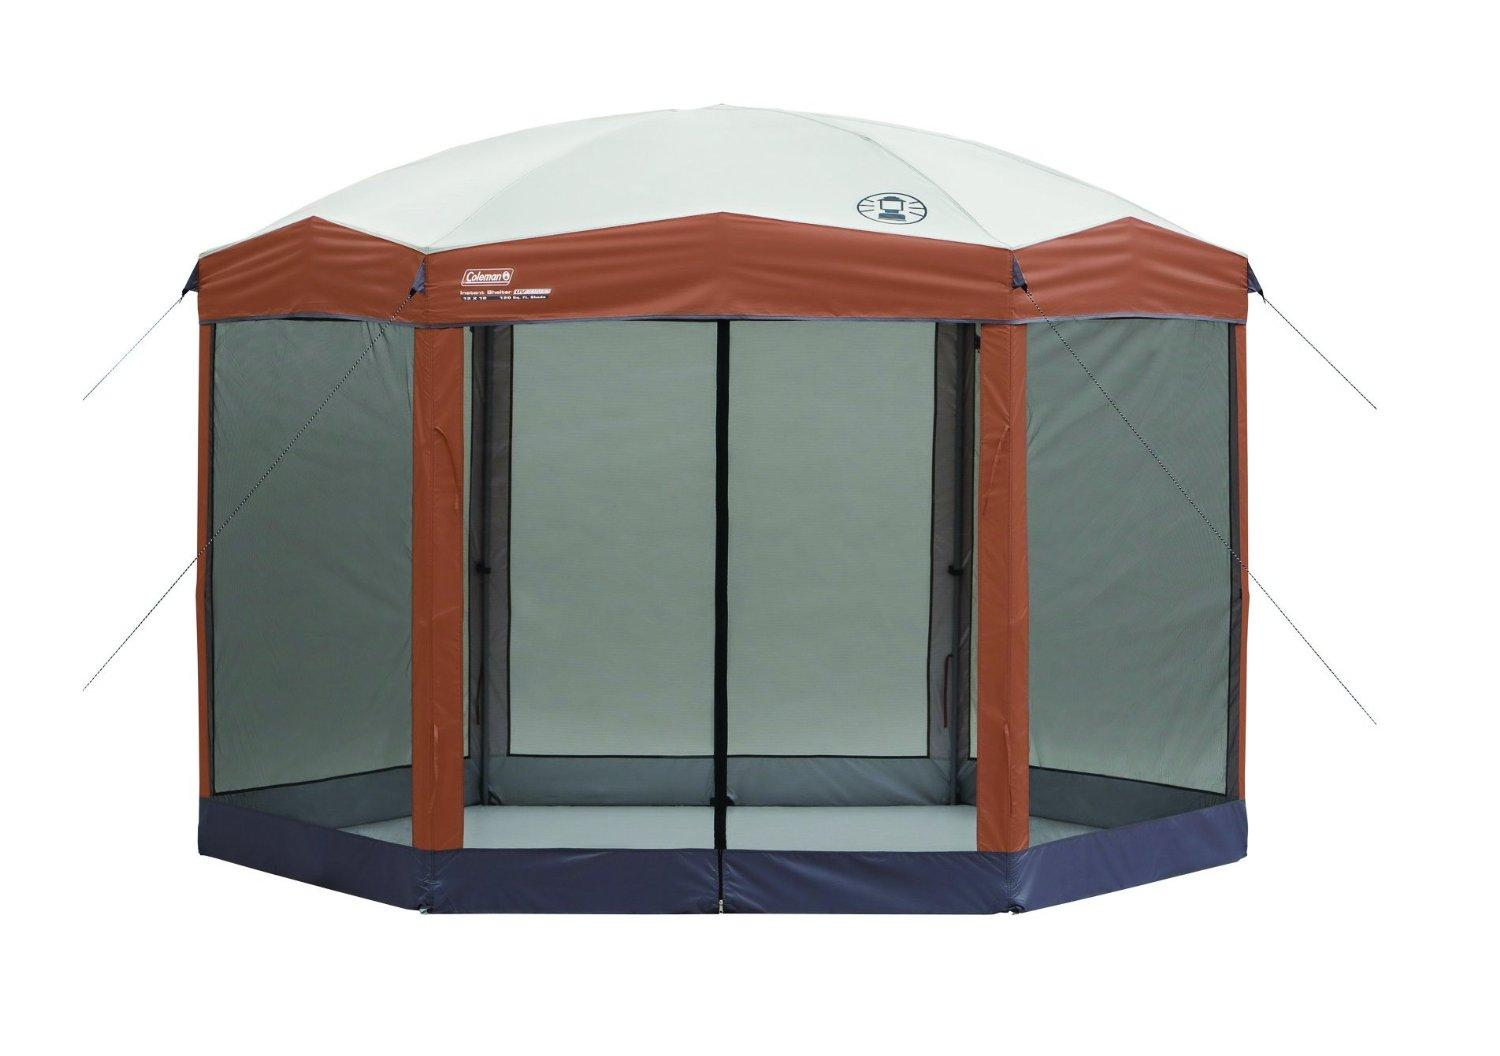 Lowest price! Coleman 12-by-10-foot Hex Instant Screened Canopy/Gazebo